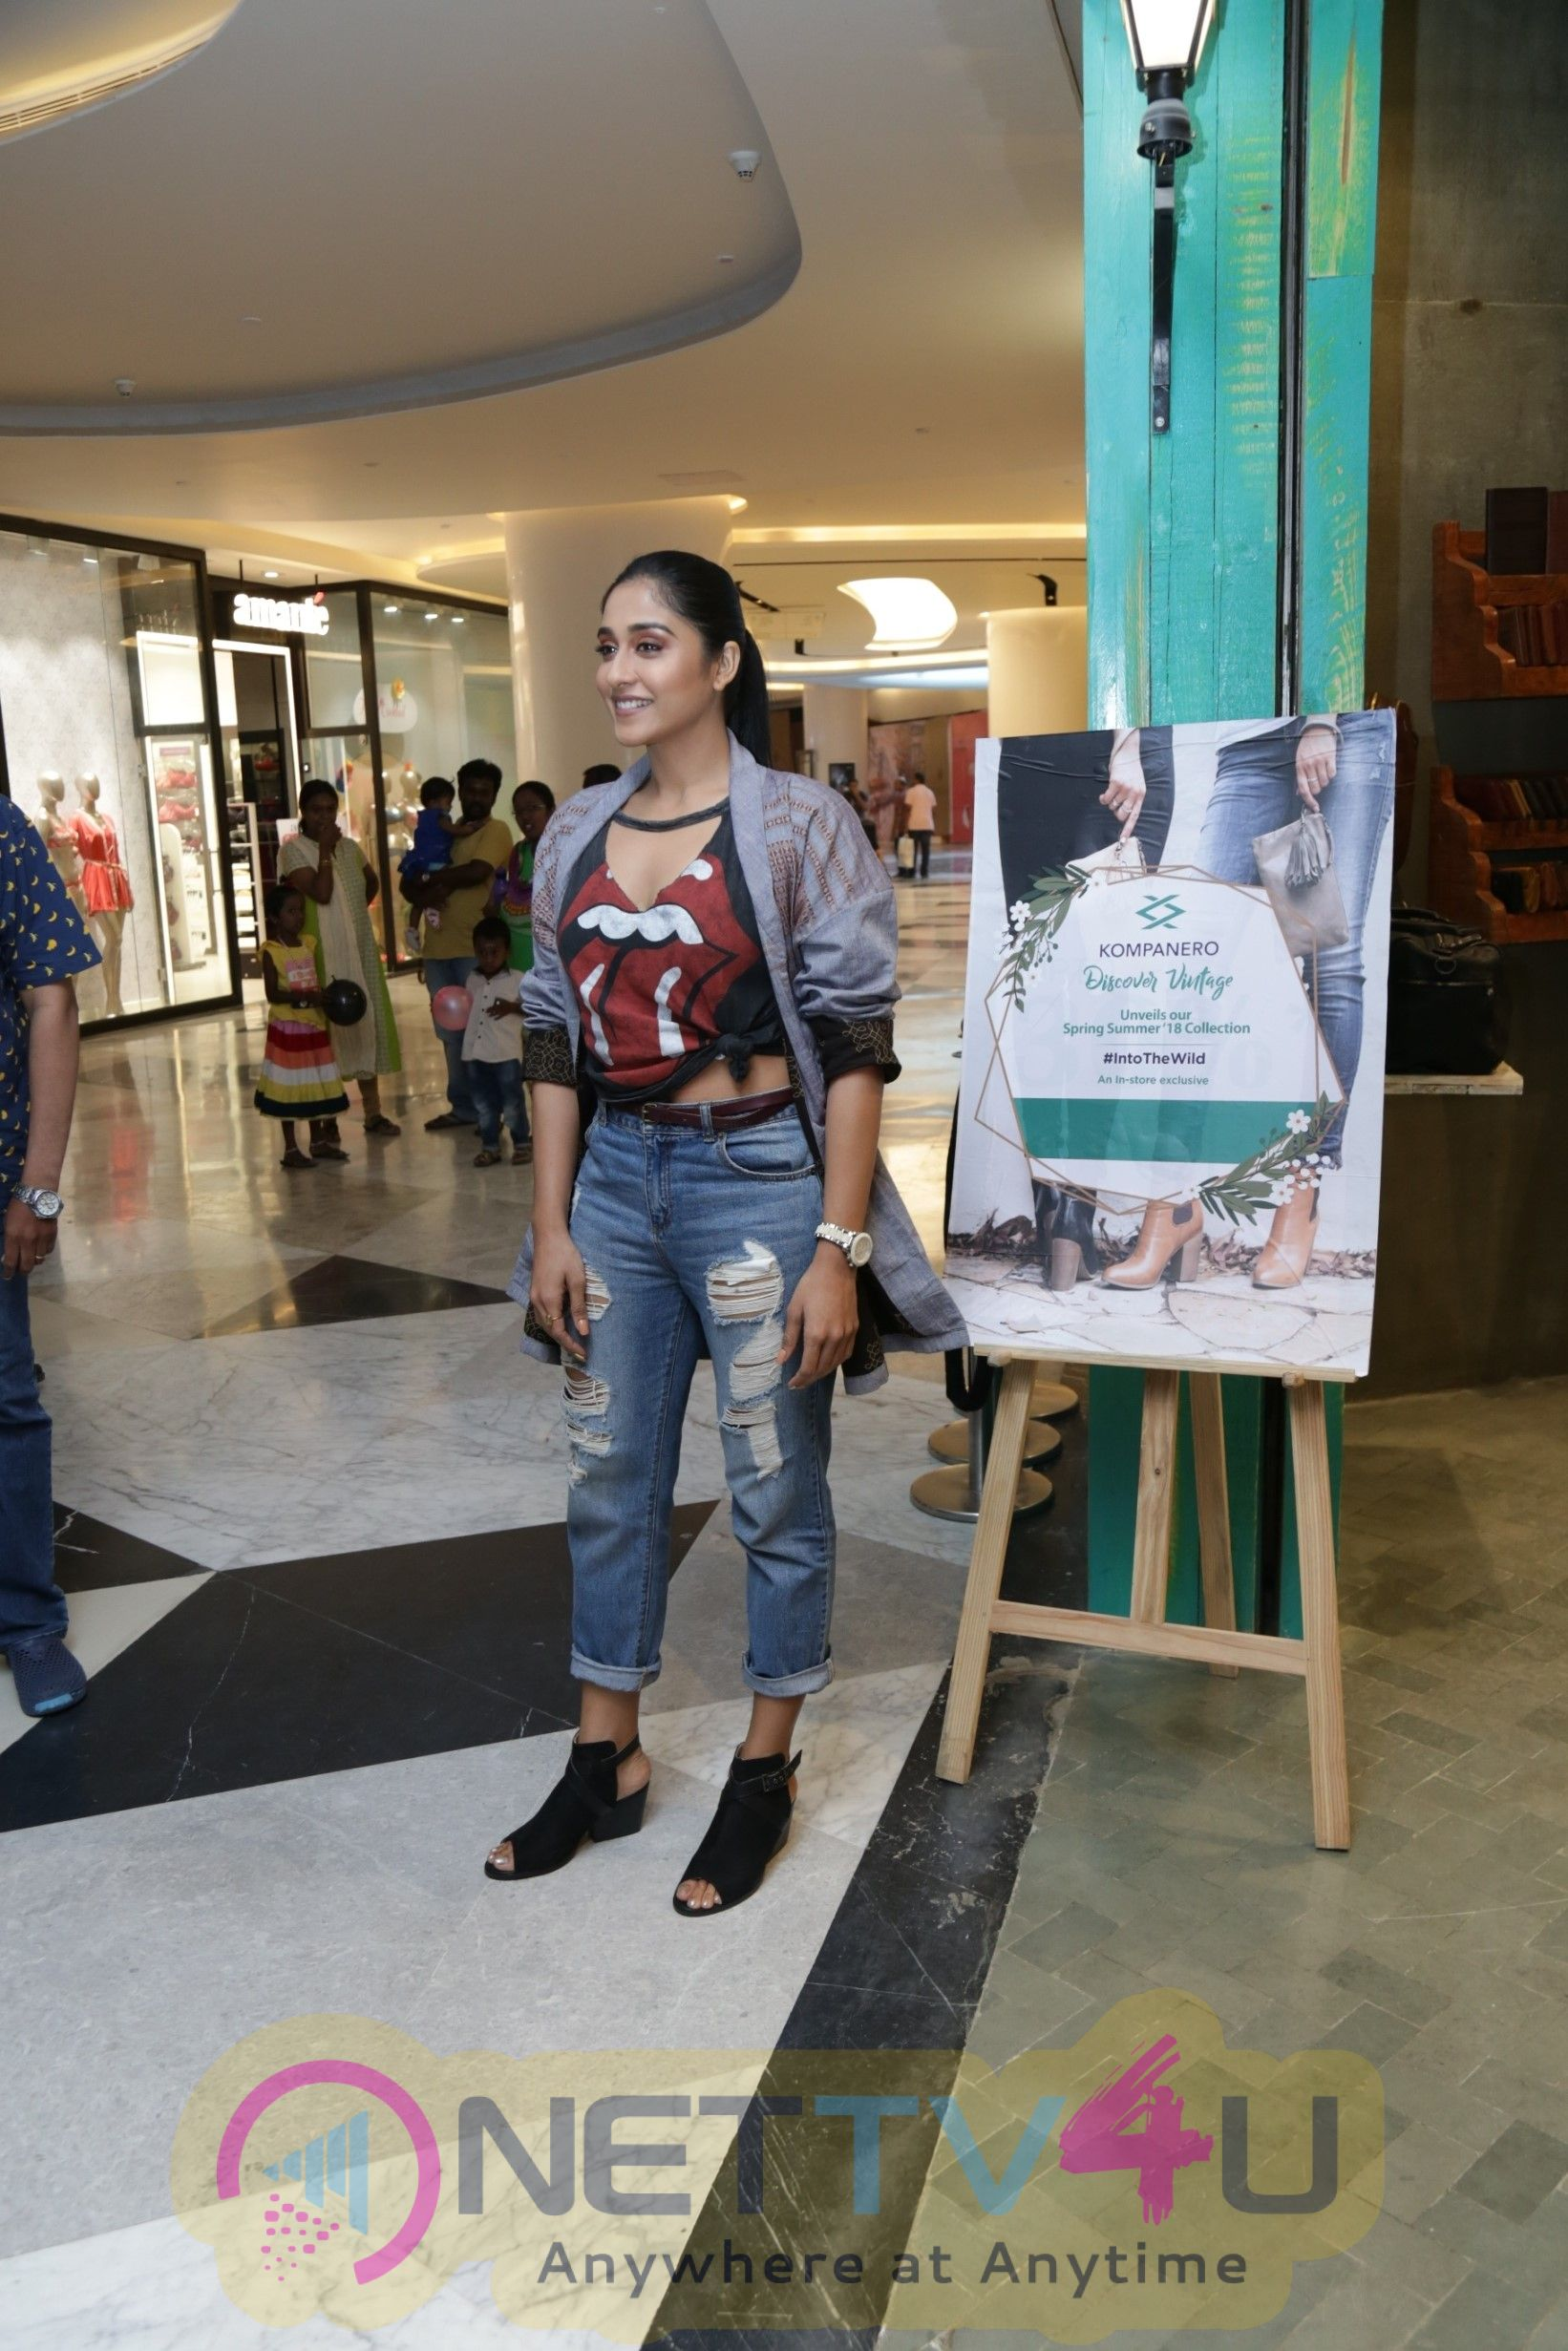 Actress Reginaa Cassandraa Launches 'kompanero' Ss' 18 Vintage Leather Accessories & Footwear Brand At Palladium Mall Pics